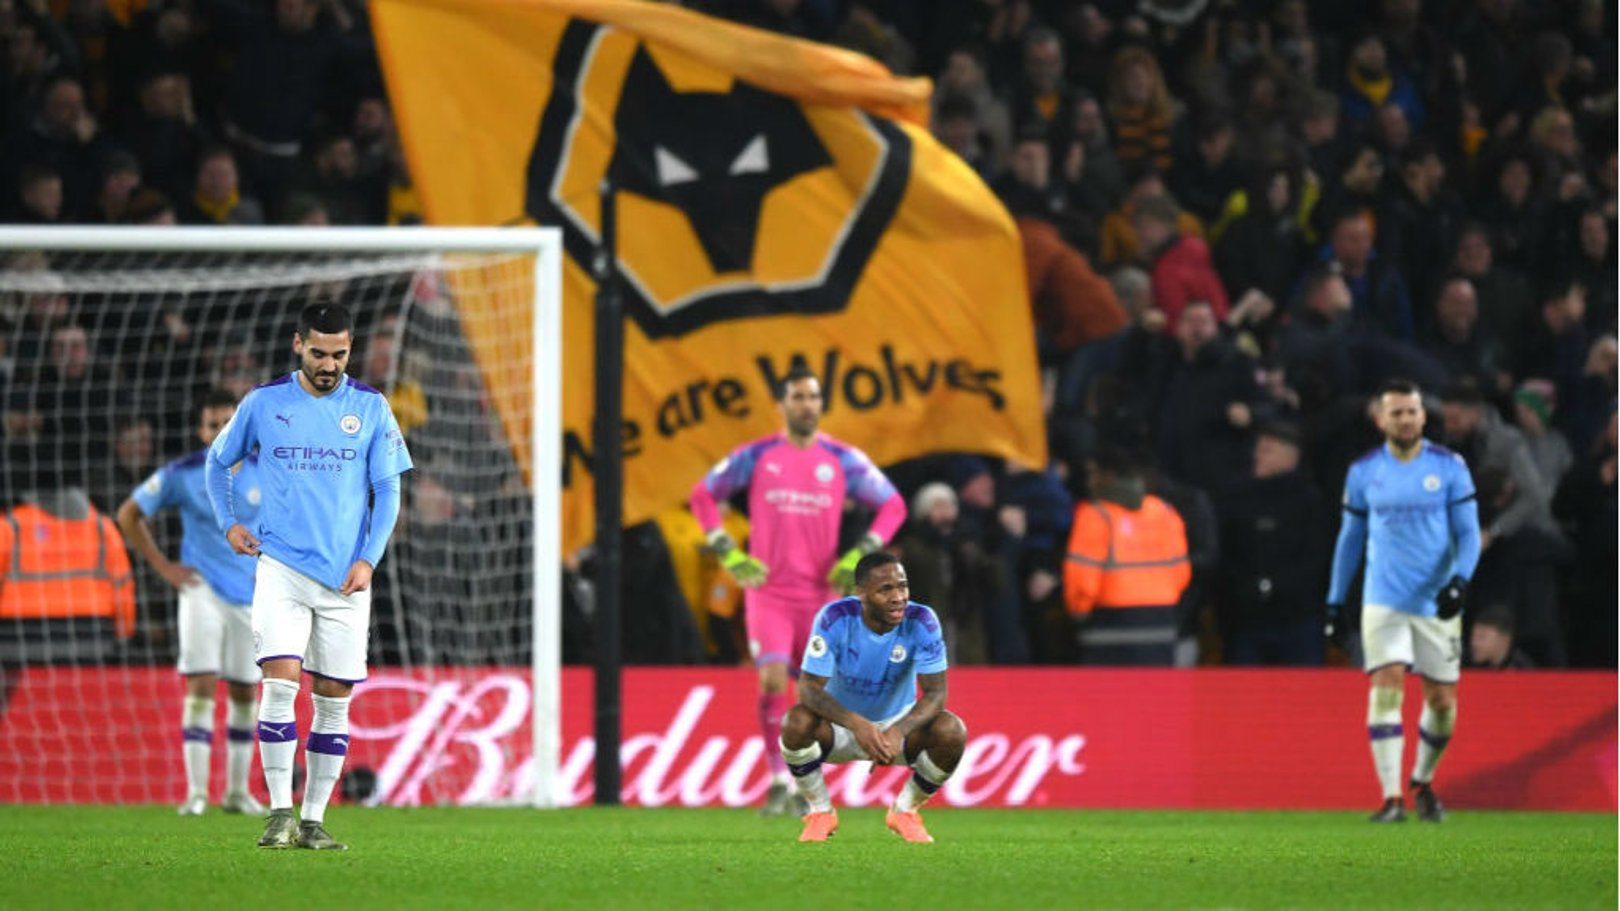 HAMMER BLOW: ...Before Matt Doherty's late effort earned Wolves all three points